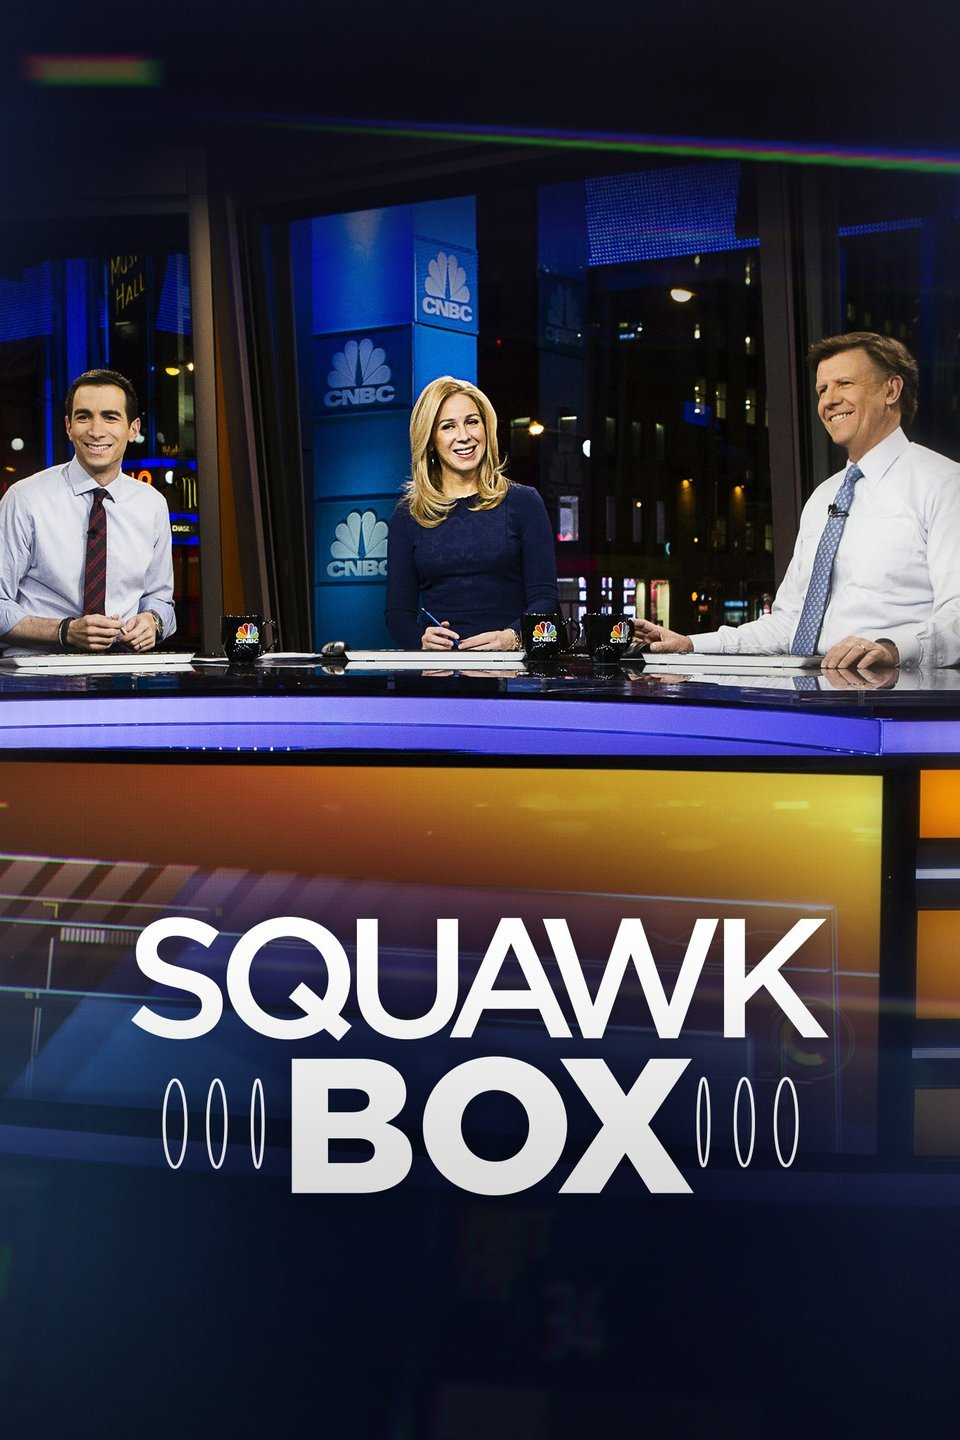 Squawk Box (TV Series 1995-)